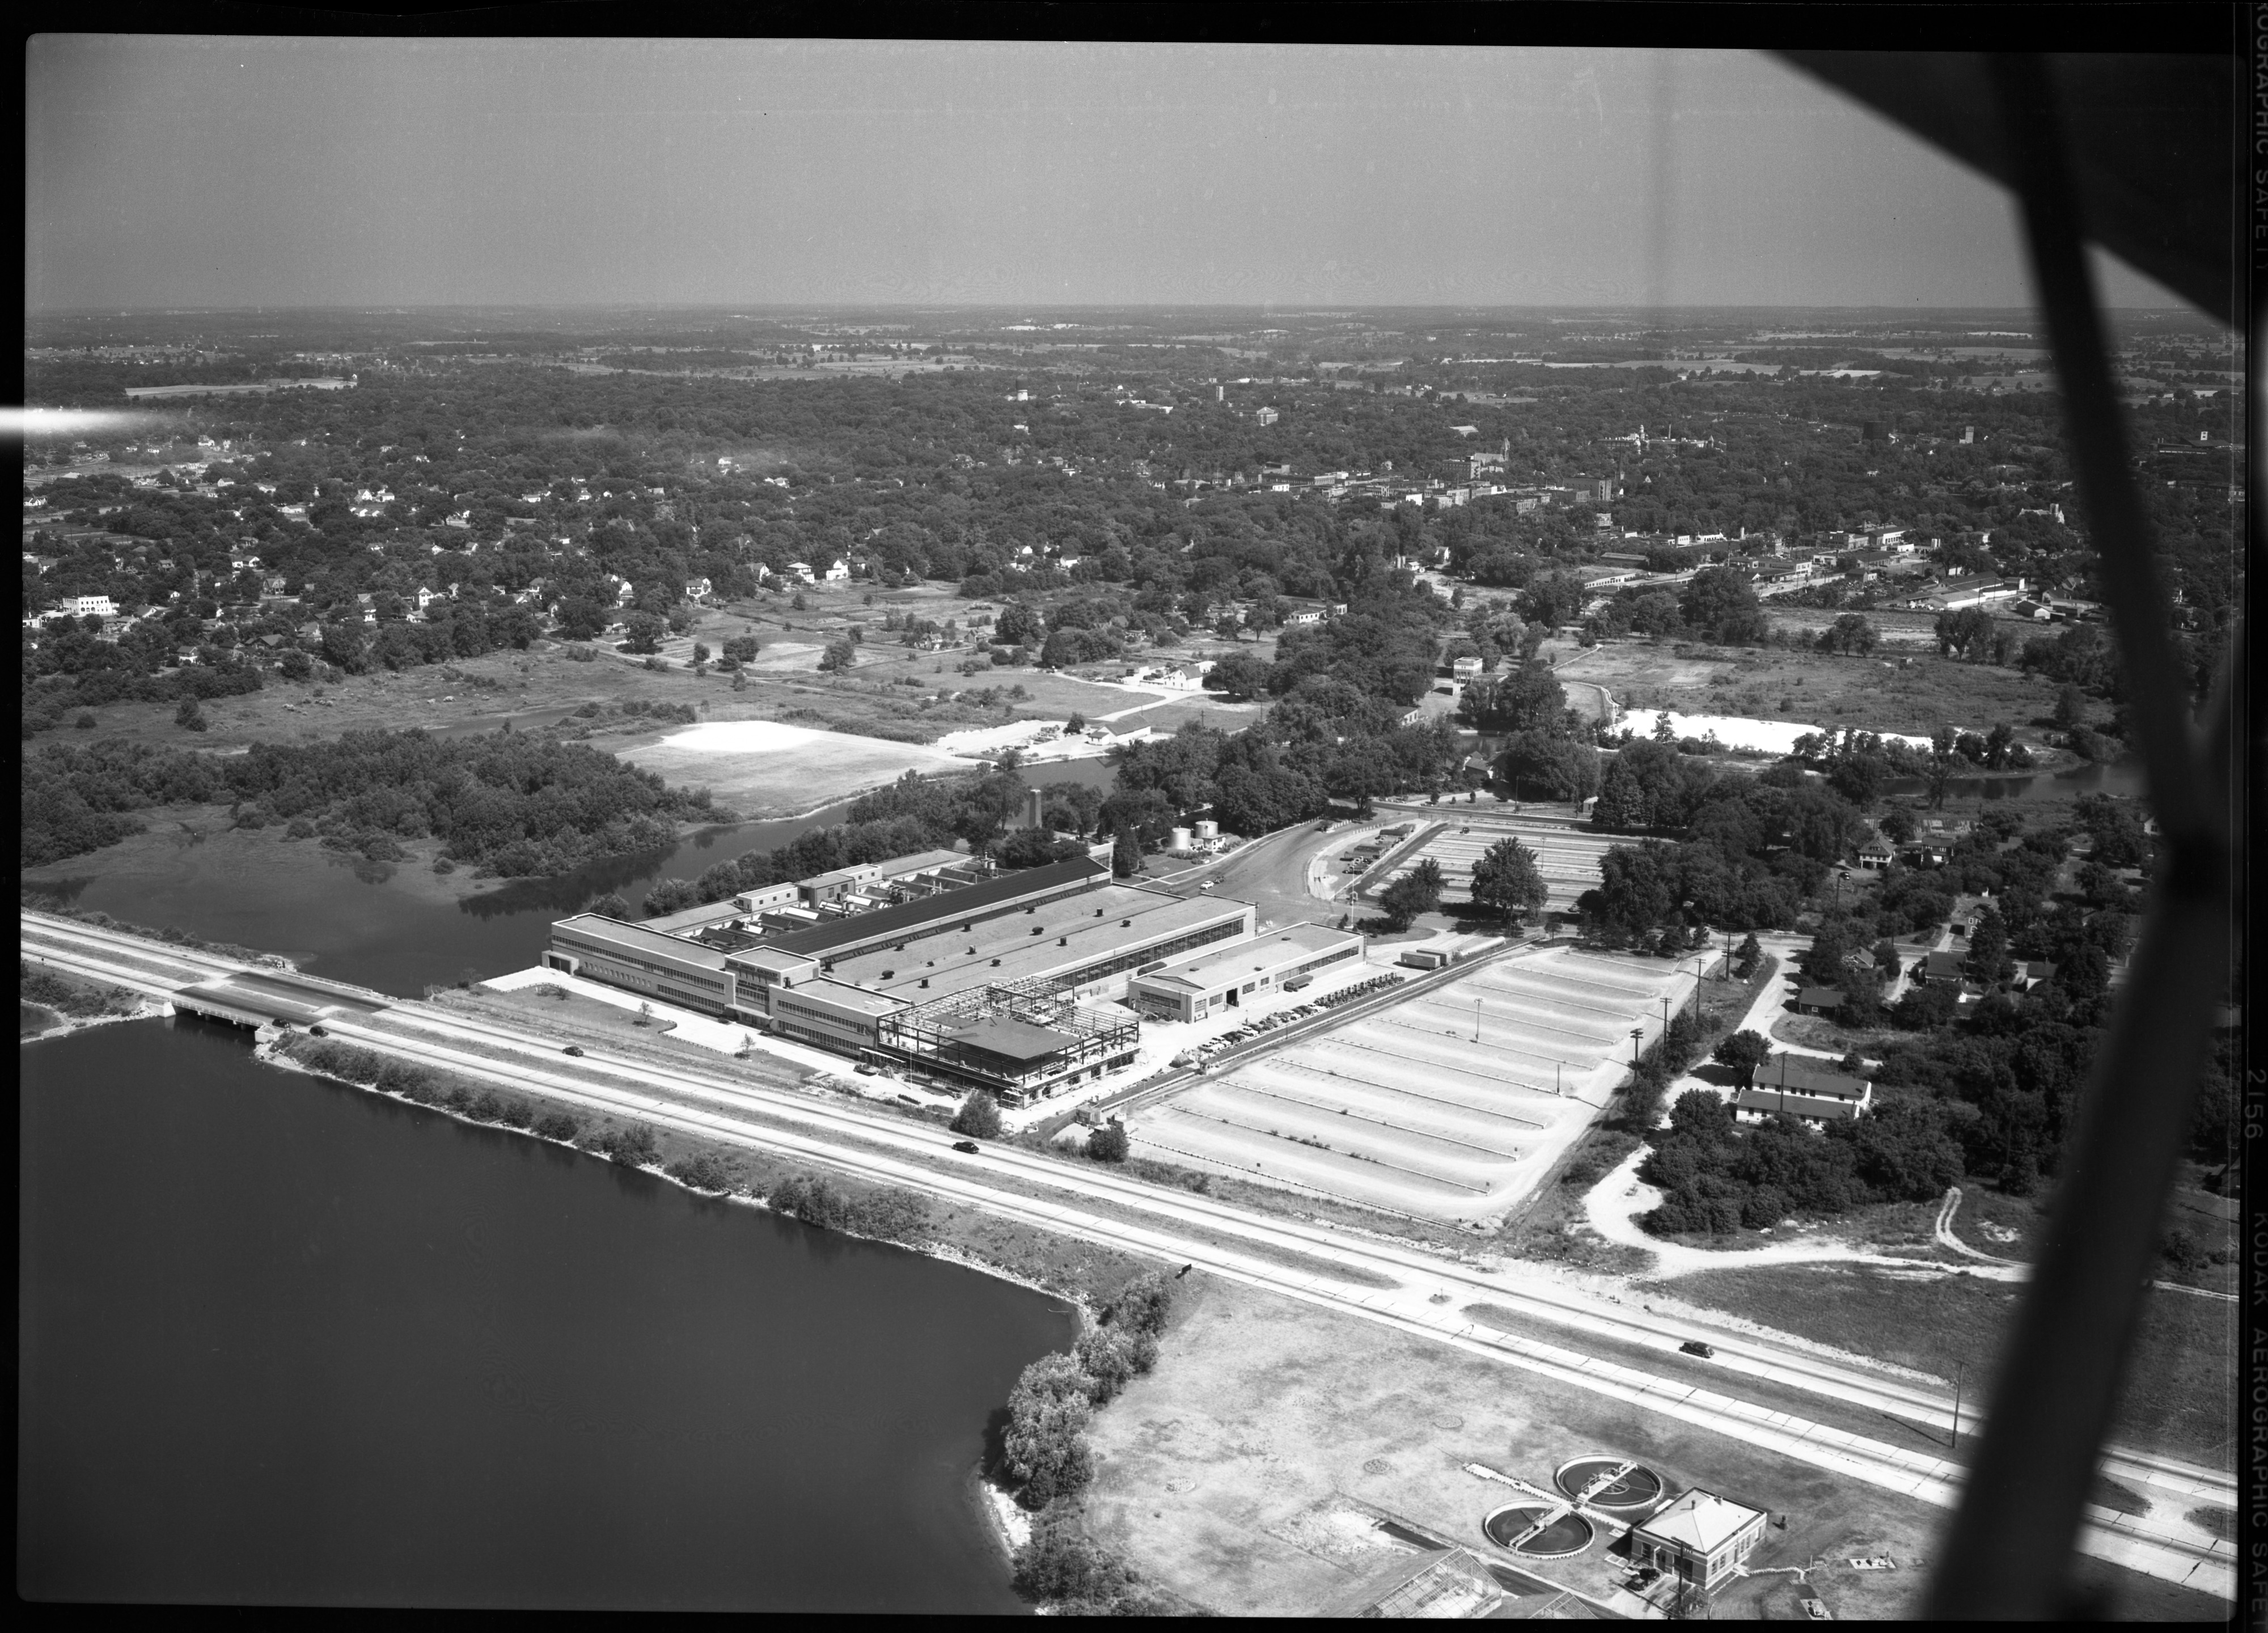 Aerial Photograph of the Ypsilanti Ford Motor Co. Plant, July 1950 image